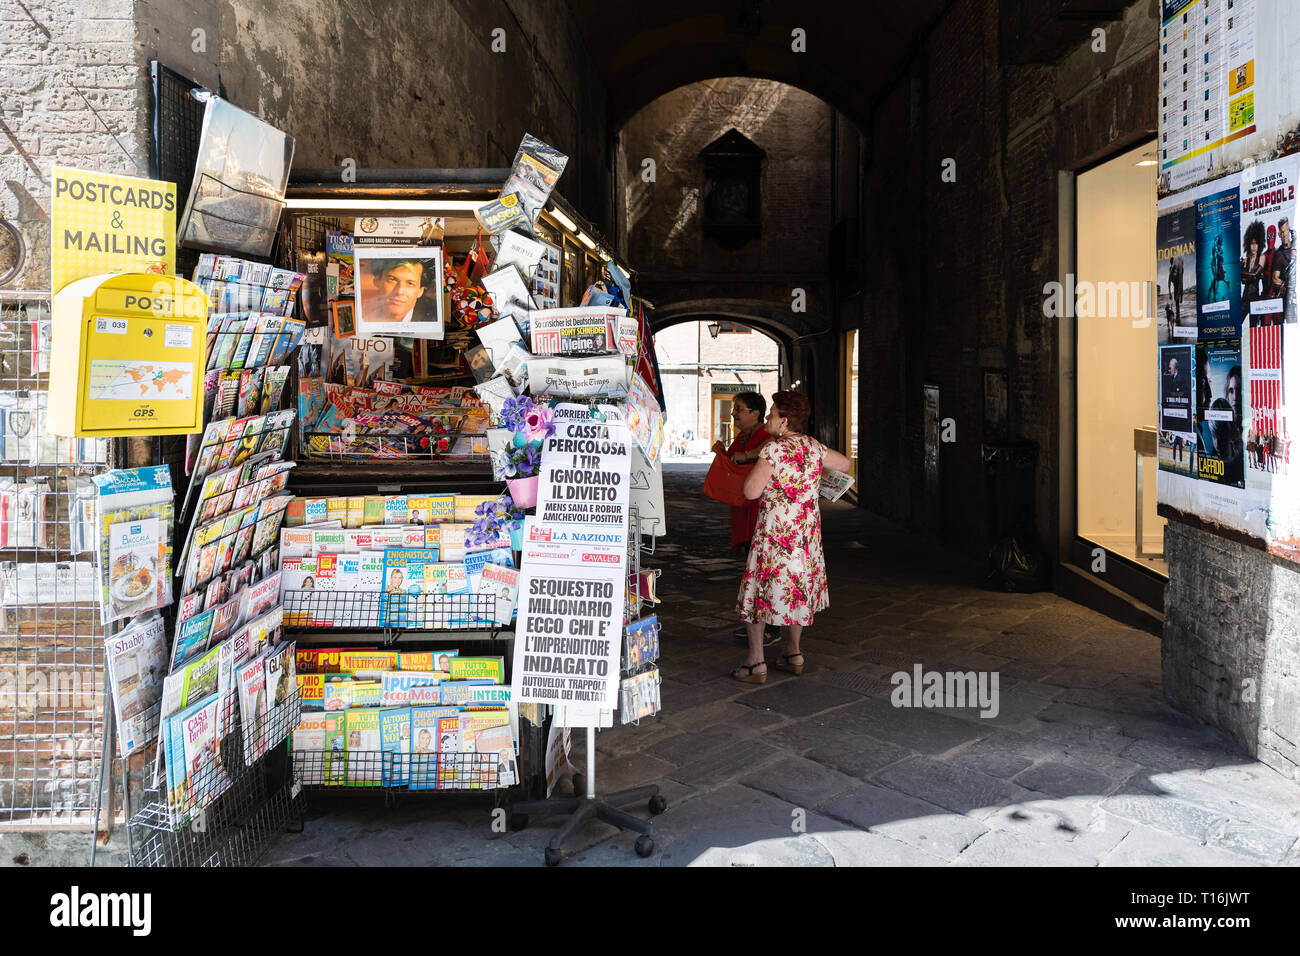 Siena, Italy - August 27, 2018: Historic medieval old town village in Tuscany with shopping souvenirs and map tour travel guide street vendor retail d - Stock Image